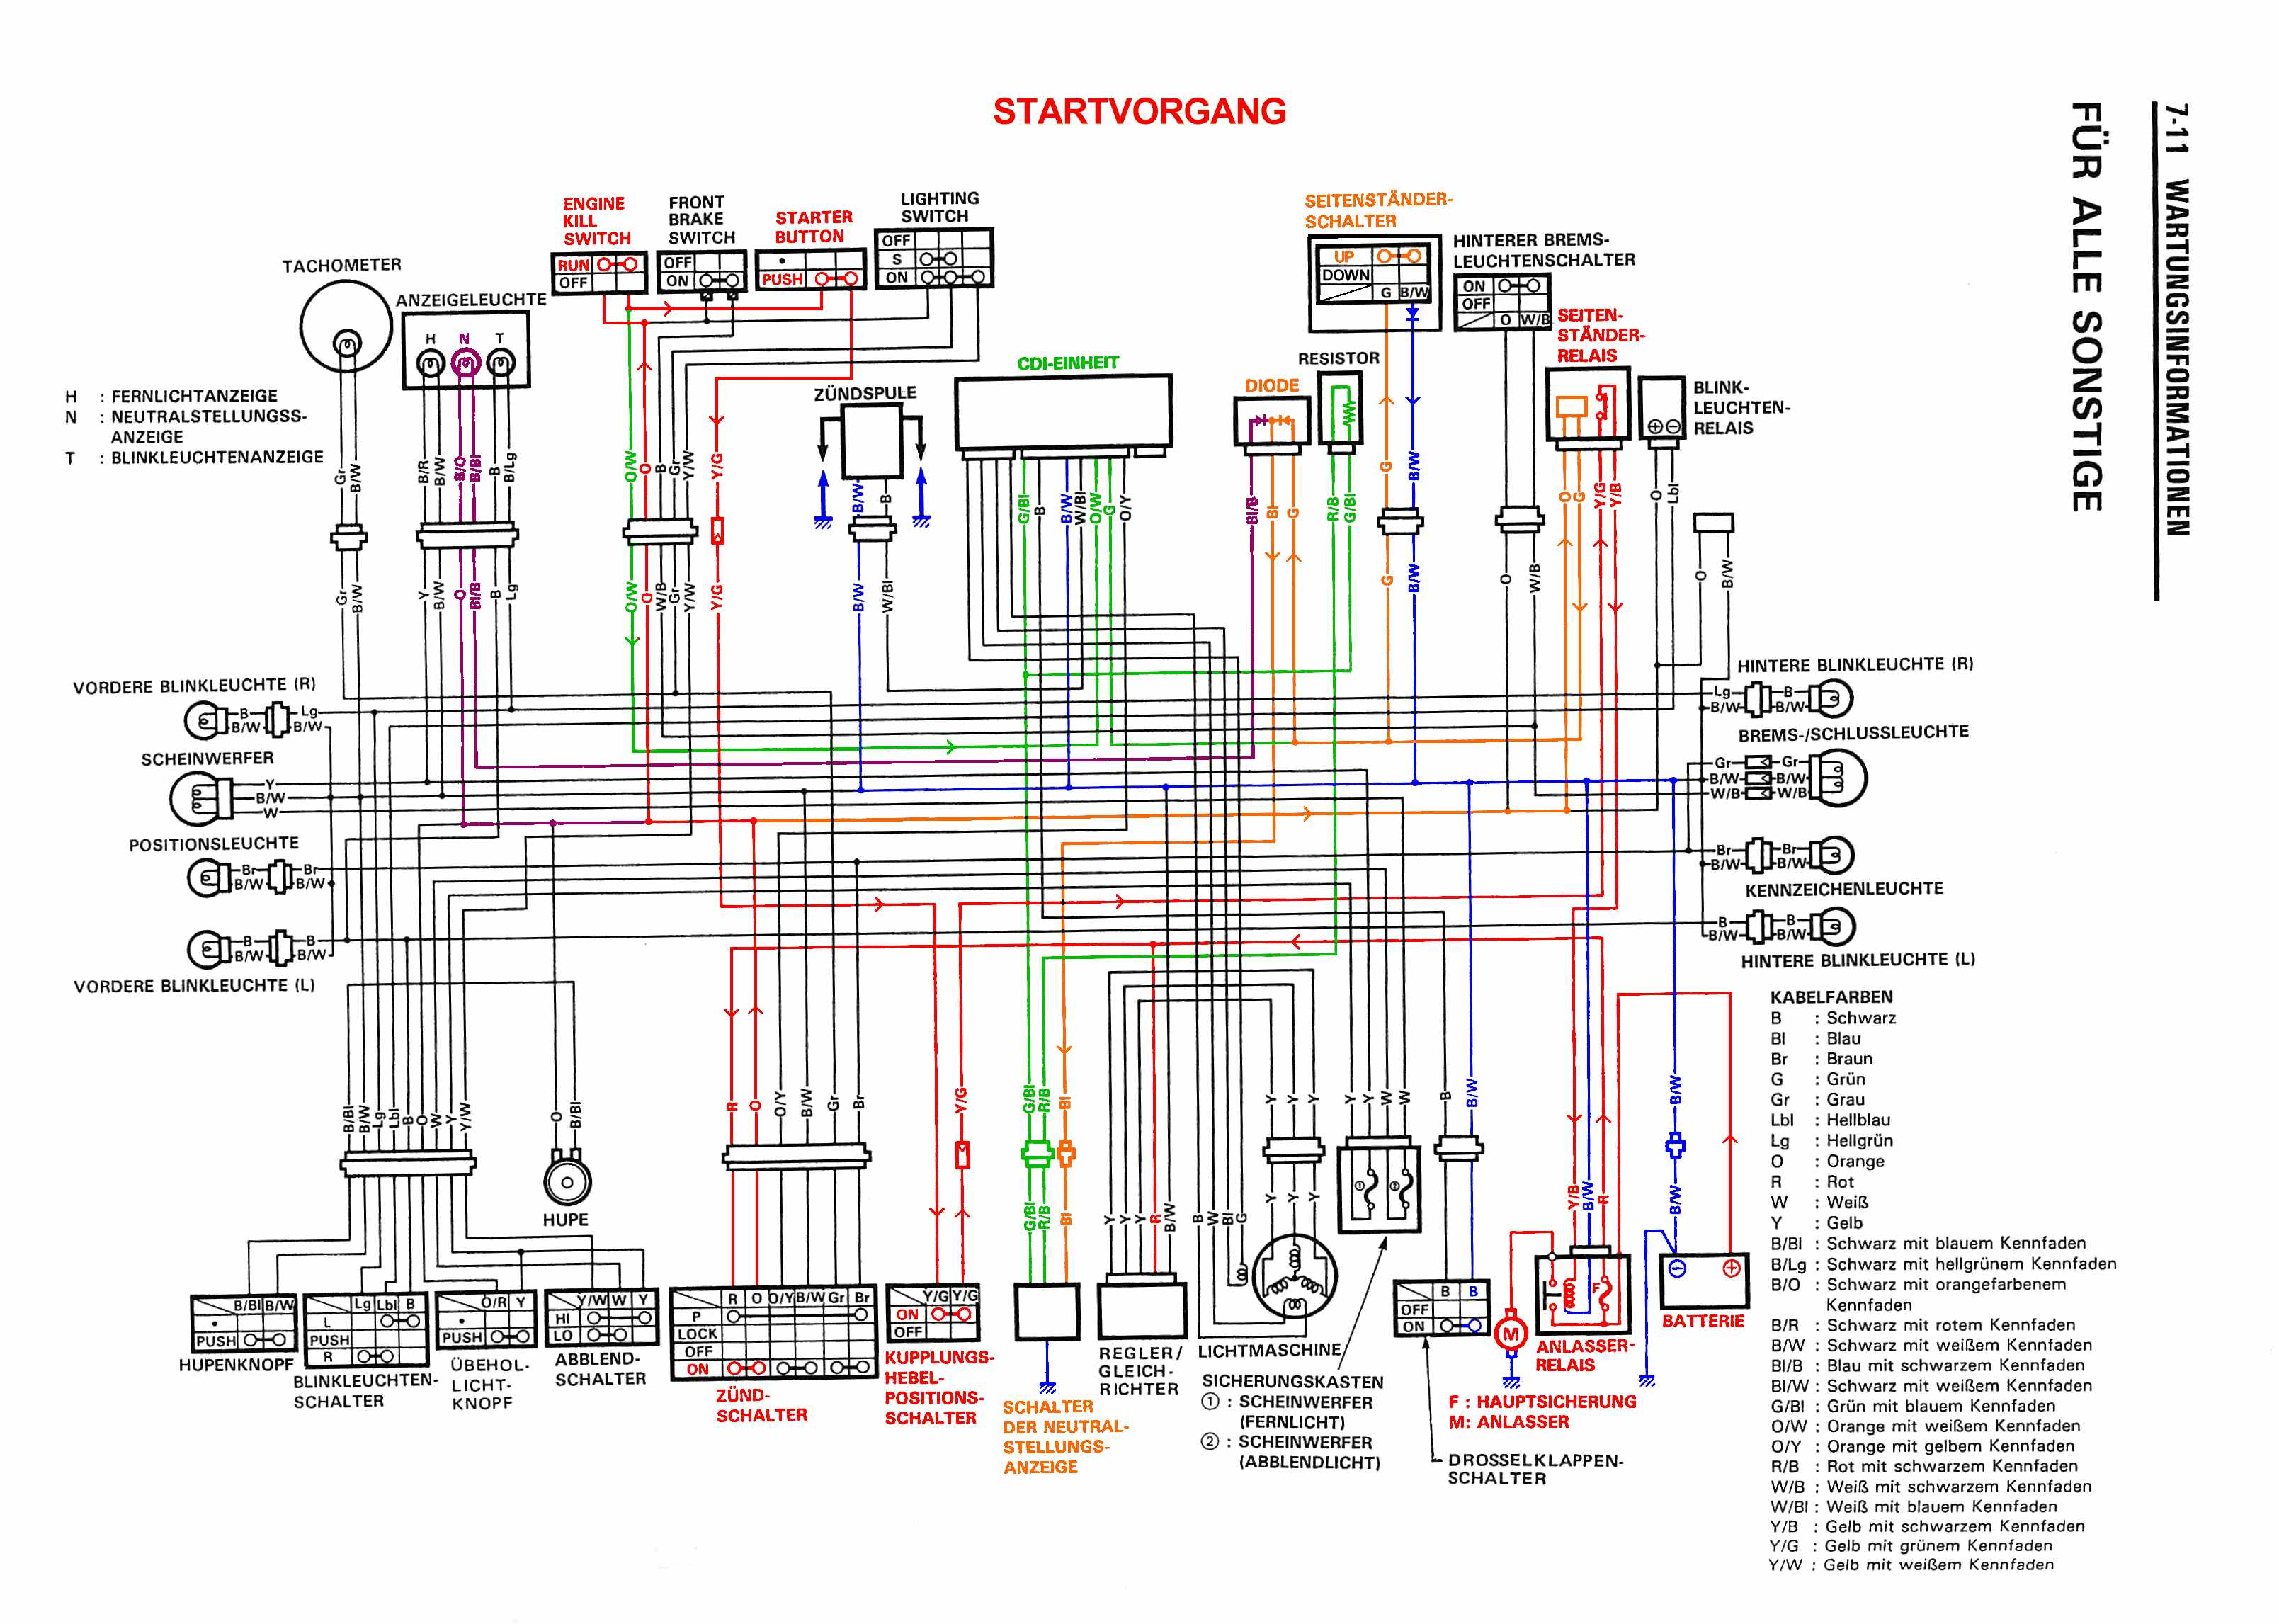 2012 Suzuki Dr650 Wiring Diagram Great Installation Of Todays Rh 5 18 10 1813weddingbarn Com Triumph Diagrams